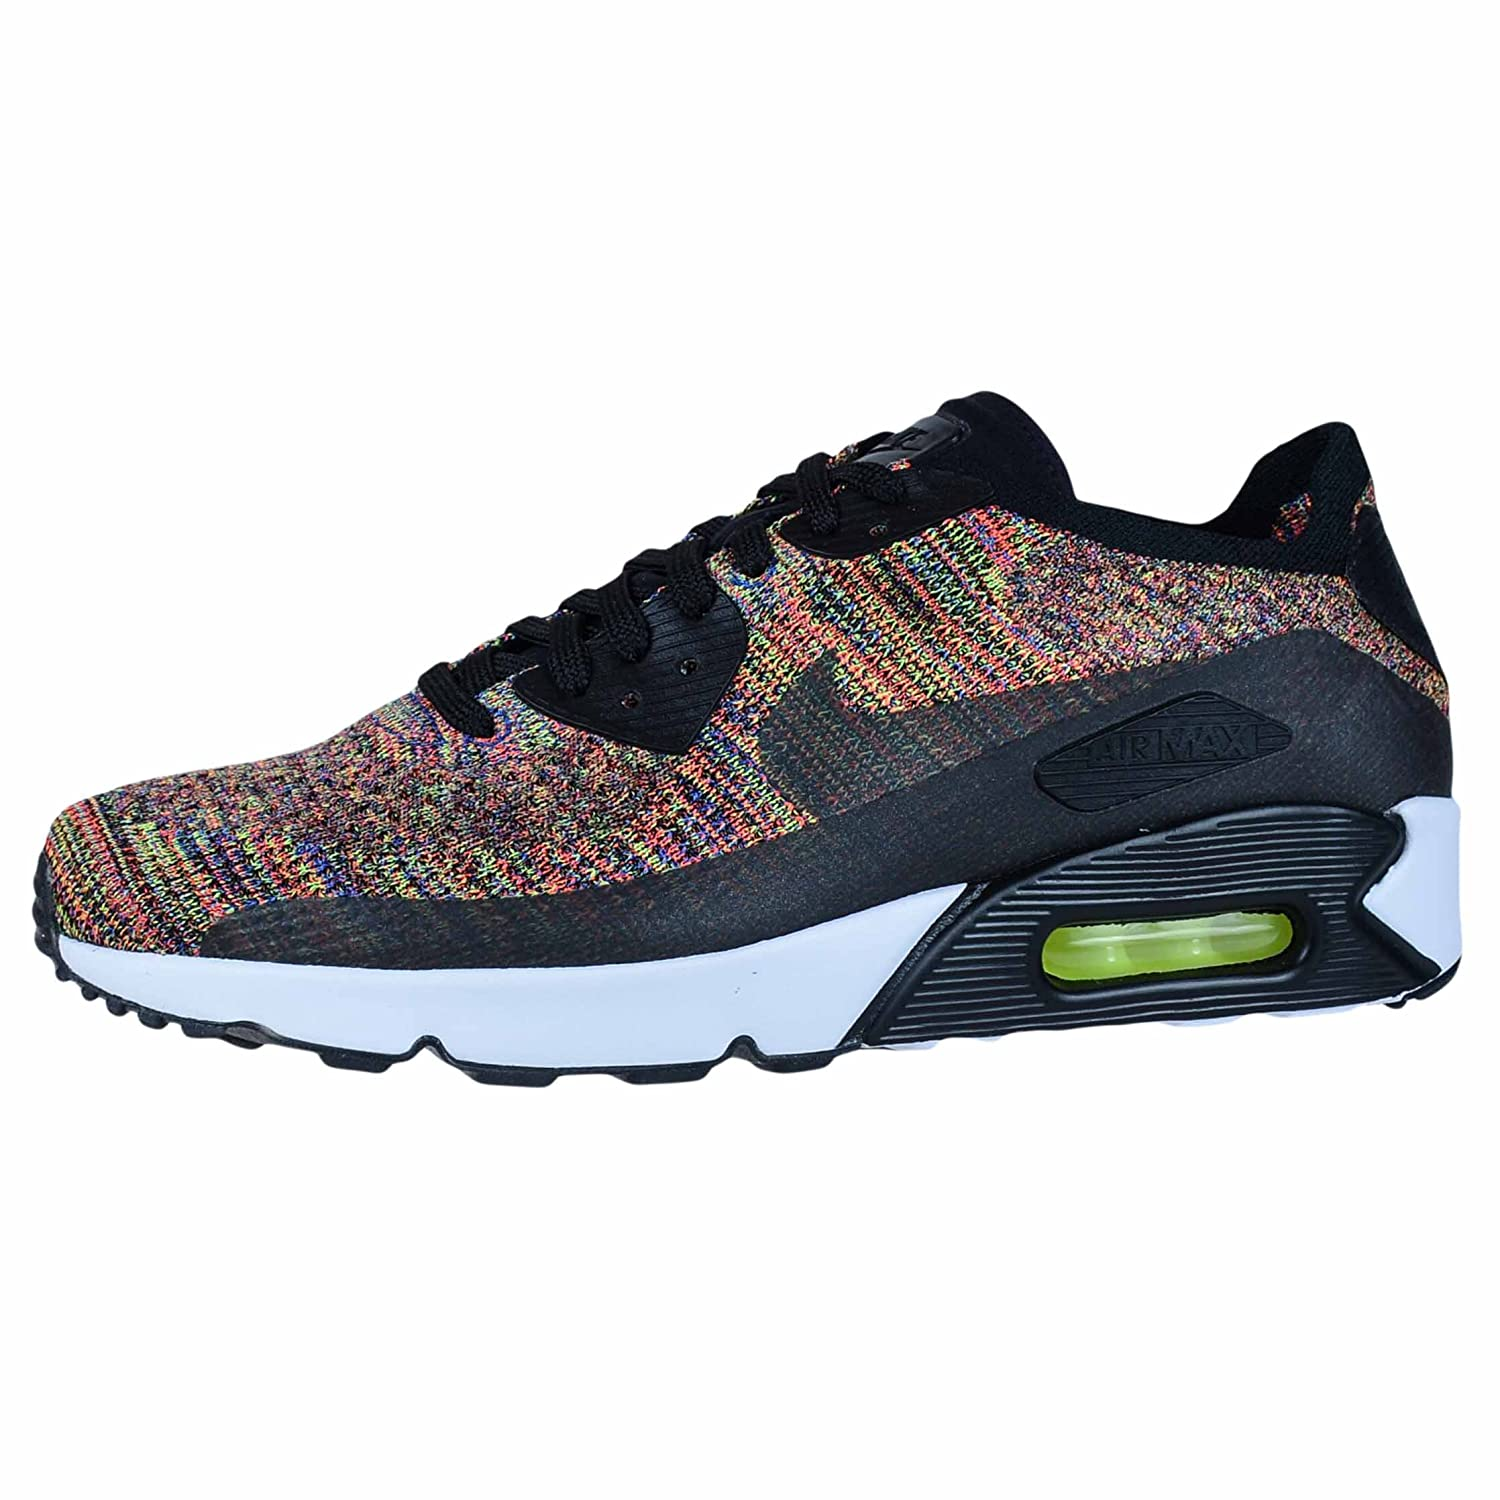 brand new efa50 1c8b8 AIR MAX 90 ULTRA 2.0 FLYKNIT  MULT - 875943-002 - SIZE 9 - US Size   Amazon.fr  Chaussures et Sacs